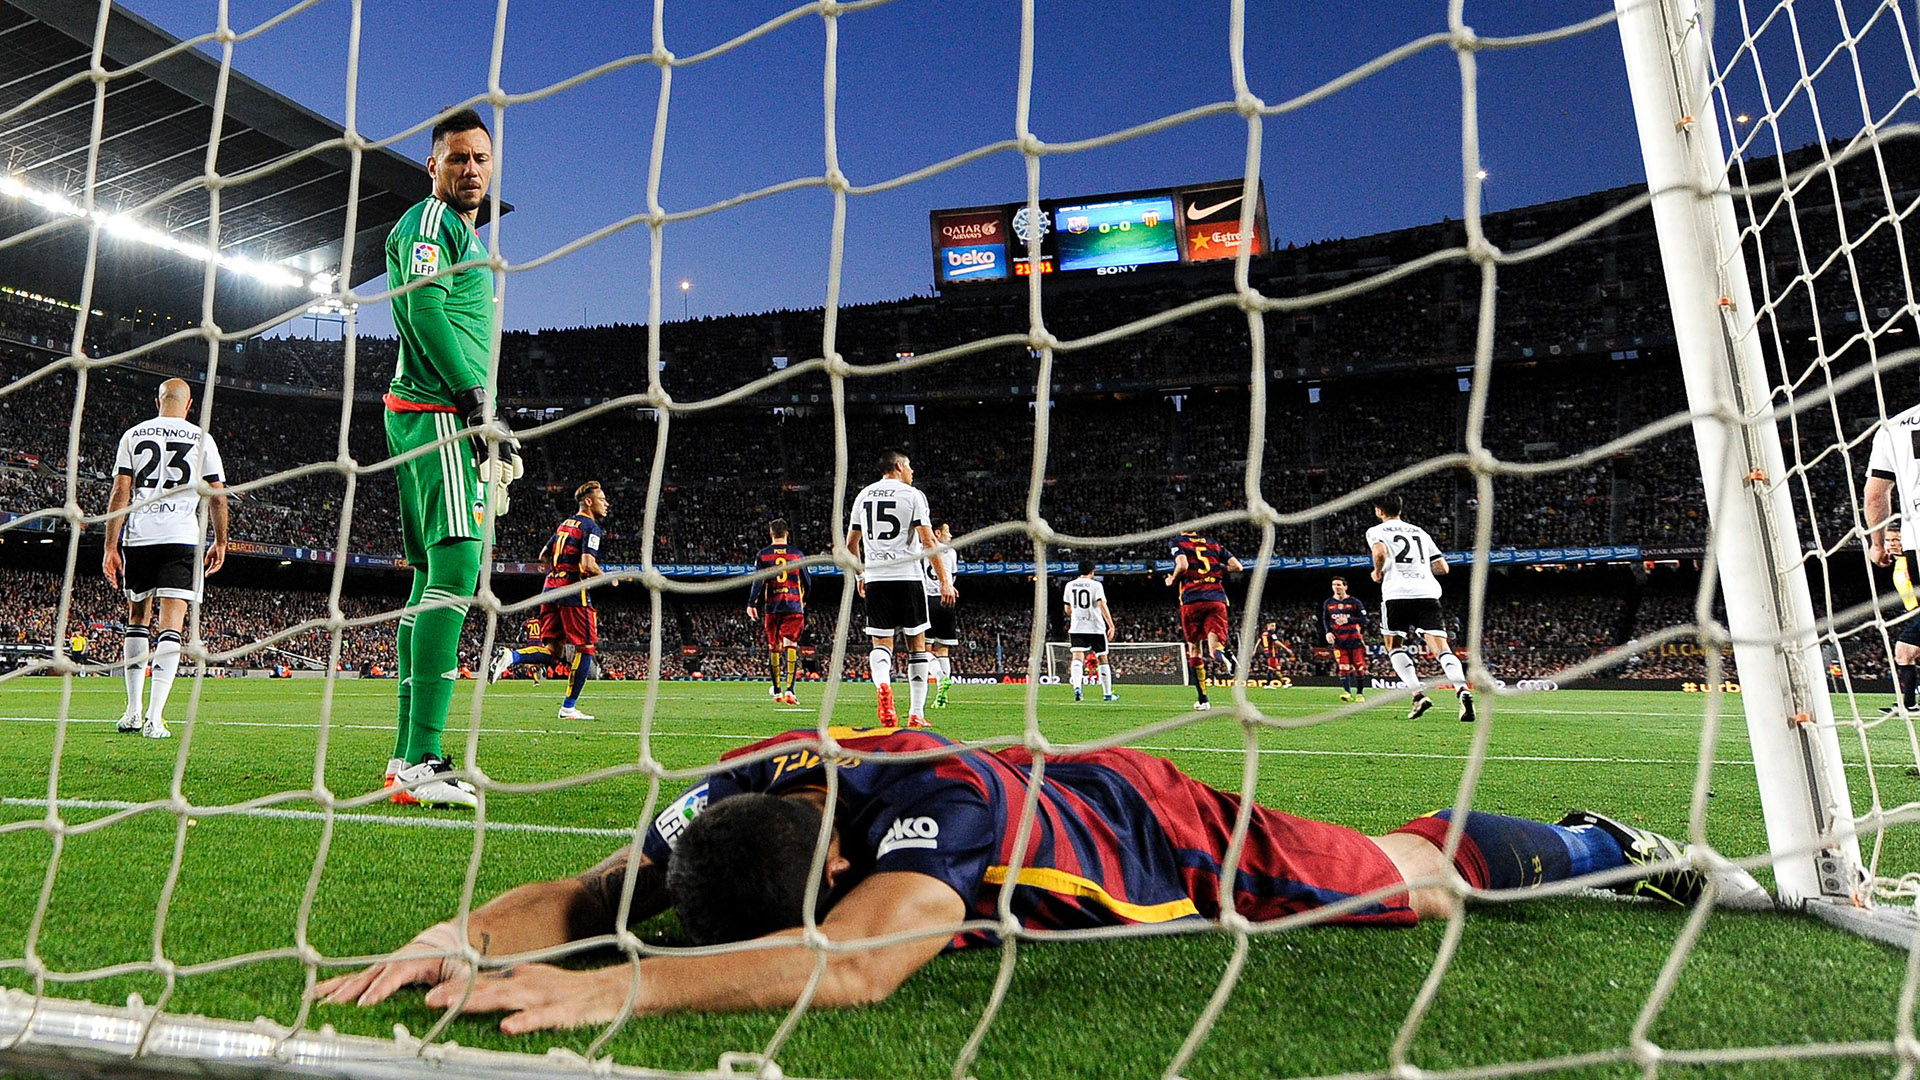 Barcelona's Uruguayan forward Luis Suarez lies in the goal during the Spanish league football match FC Barcelona vs Valencia CF at the Camp Nou stadium in Barcelona on April 17, 2016. / AFP / JOSEP LAGO        (Photo credit should read JOSEP LAGO/AFP/Getty Images)